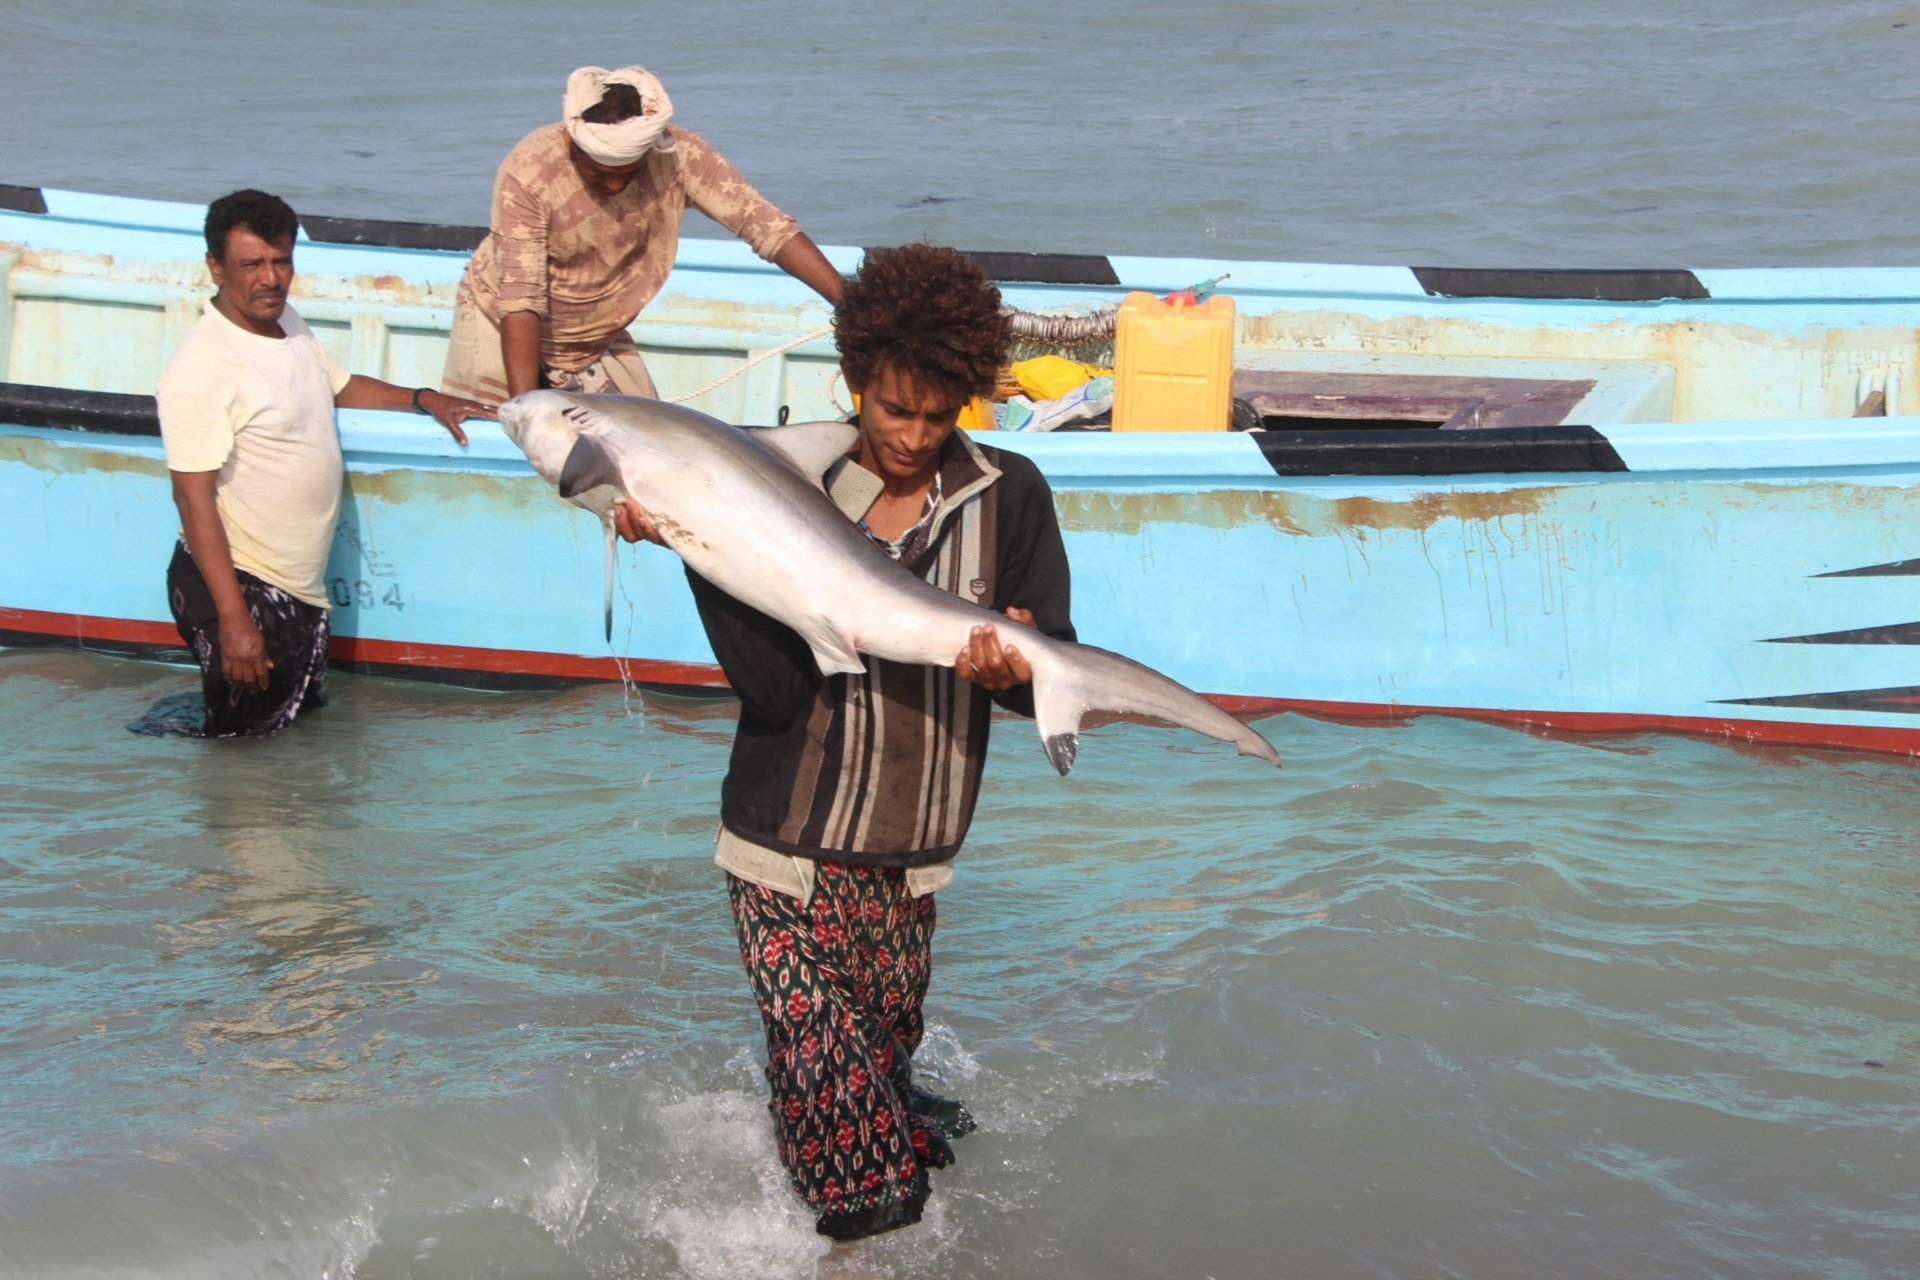 A Yemeni fisherman carries a caught fish back to shore in the Khokha district of the western province of Hodeidah (AFP)